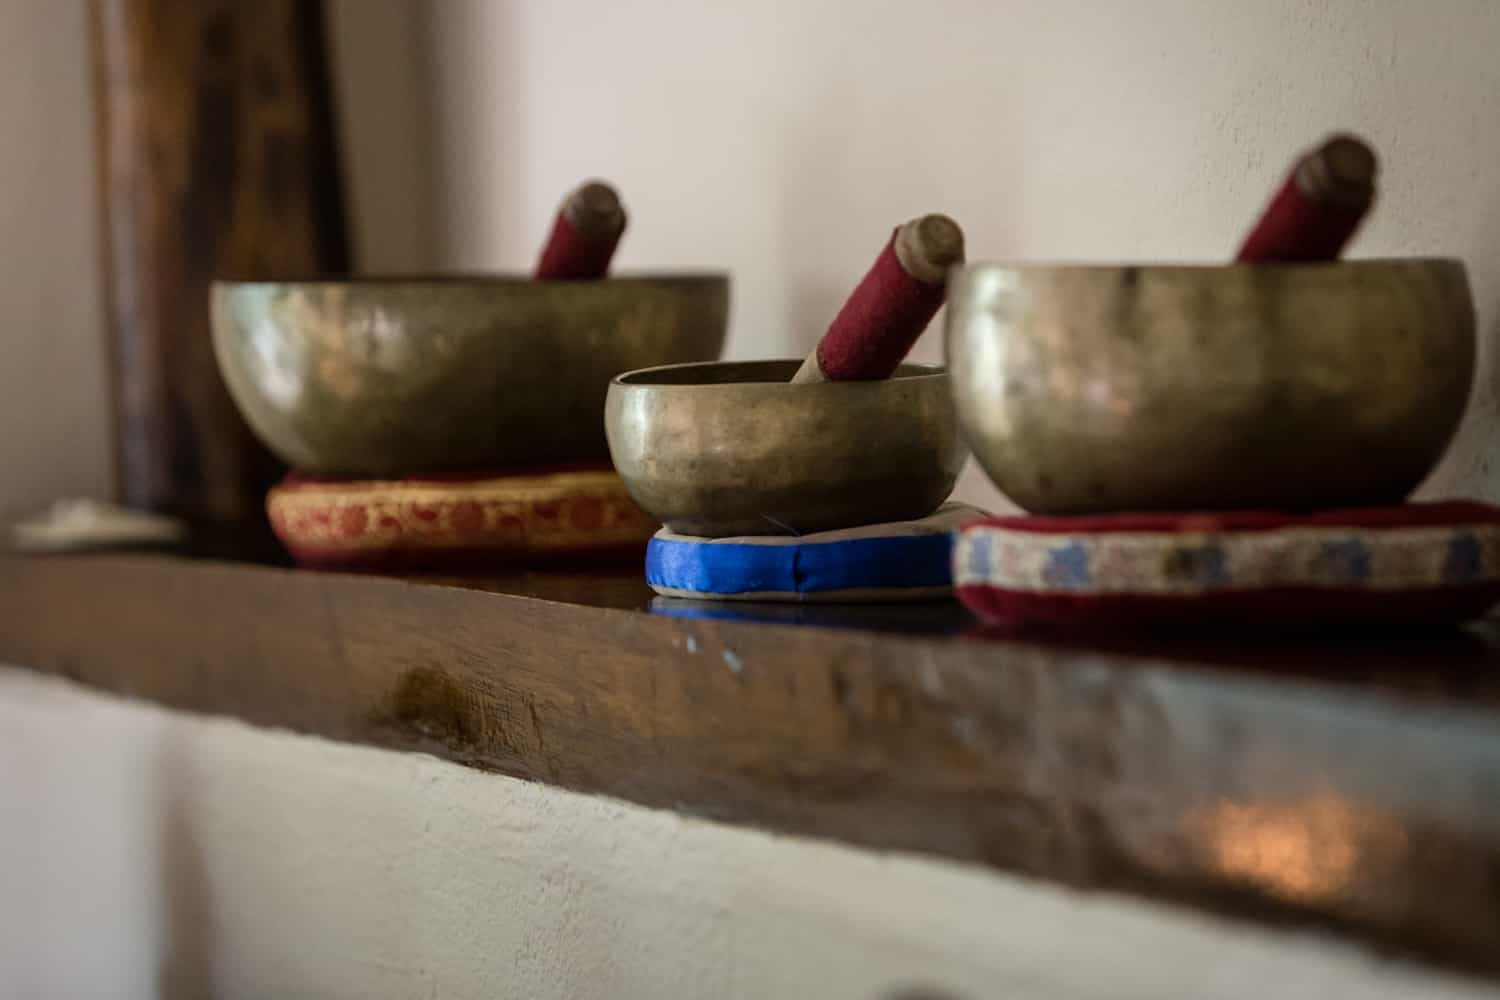 Mixing bowls for special spa treatments for couples.